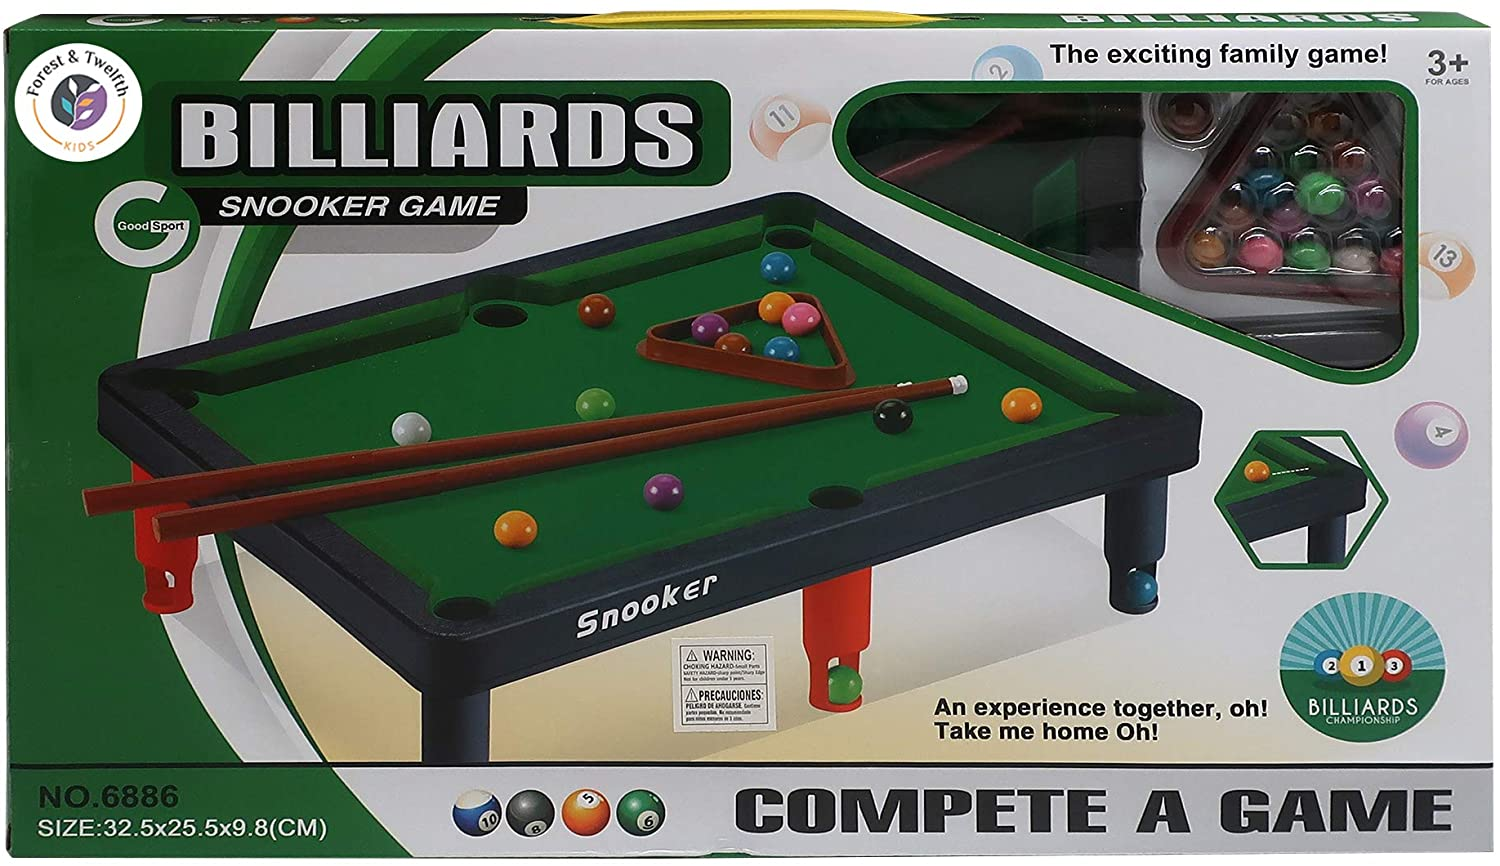 Forest & Twelfth Mini Tabletop Pool Table Kids Table-Top Billiards Game for Kids and Adults – Great for Fun Times at Home